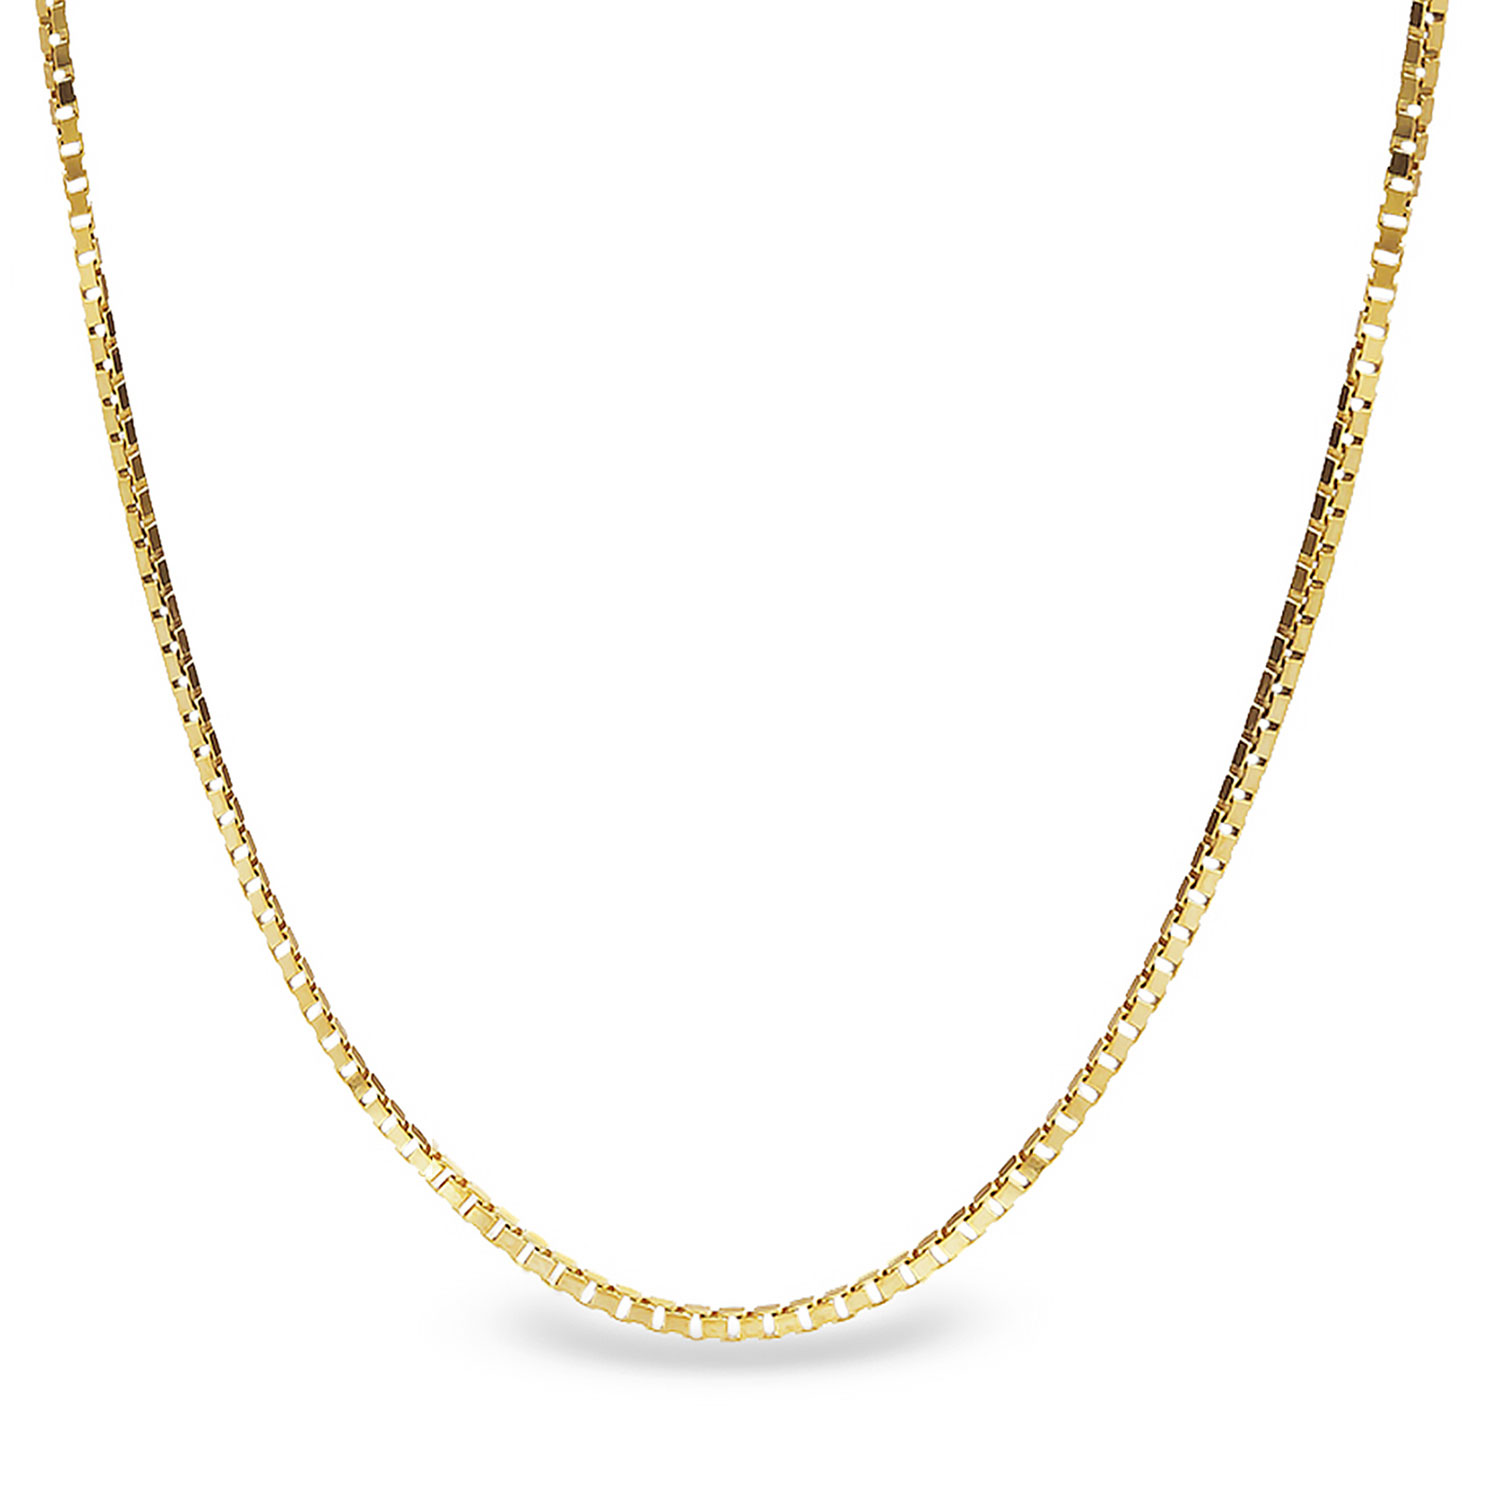 Box Chain 14k Gold Necklace - 16 in.